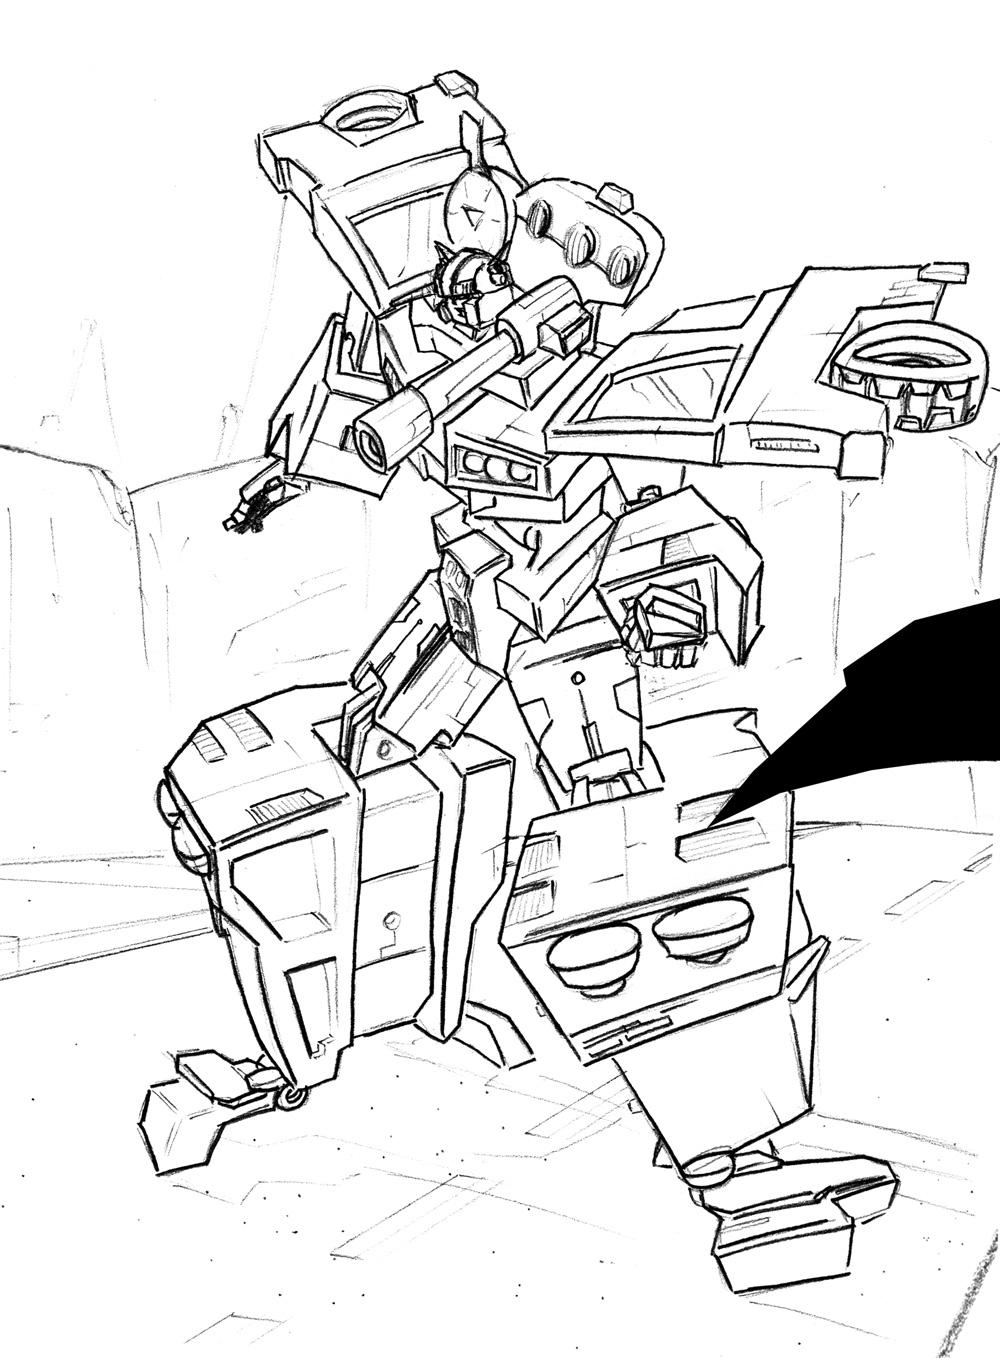 Energon ironhide drawink by dcjosh on deviantart for Ironhide coloring pages